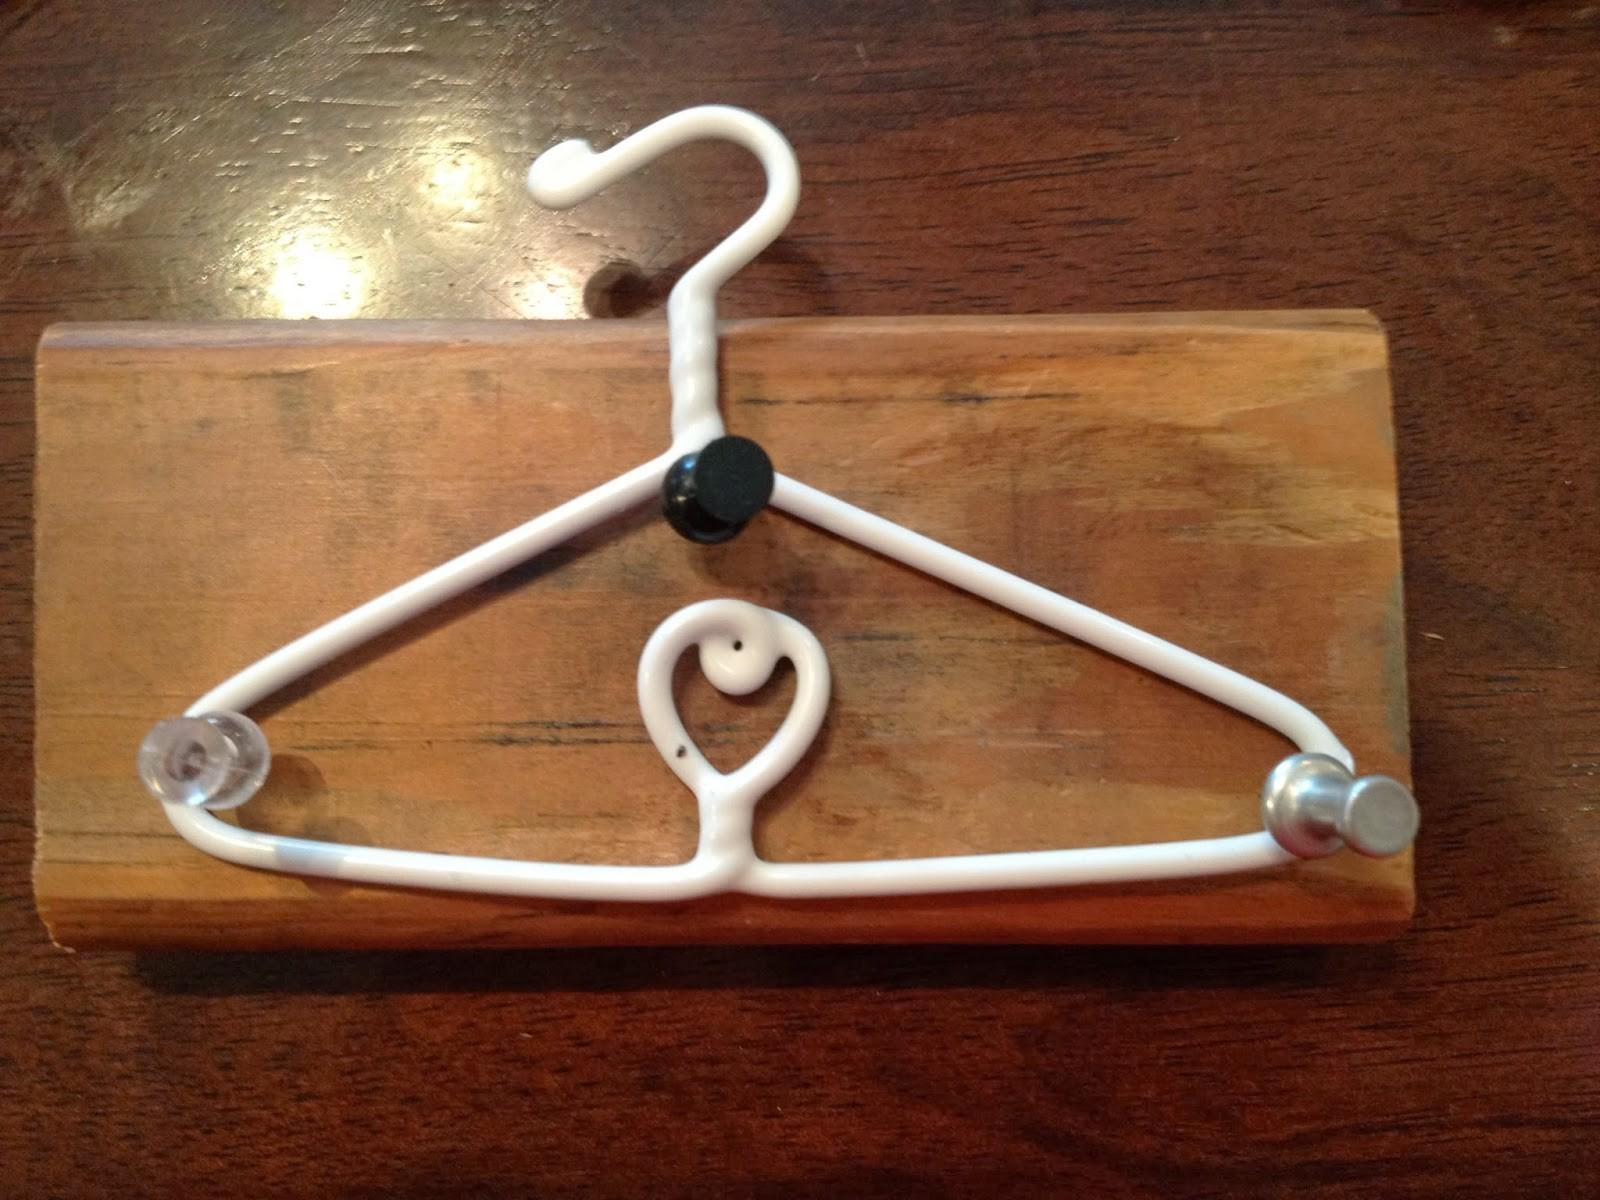 Two Yourself Diy American Girl Doll Hangers Cheap